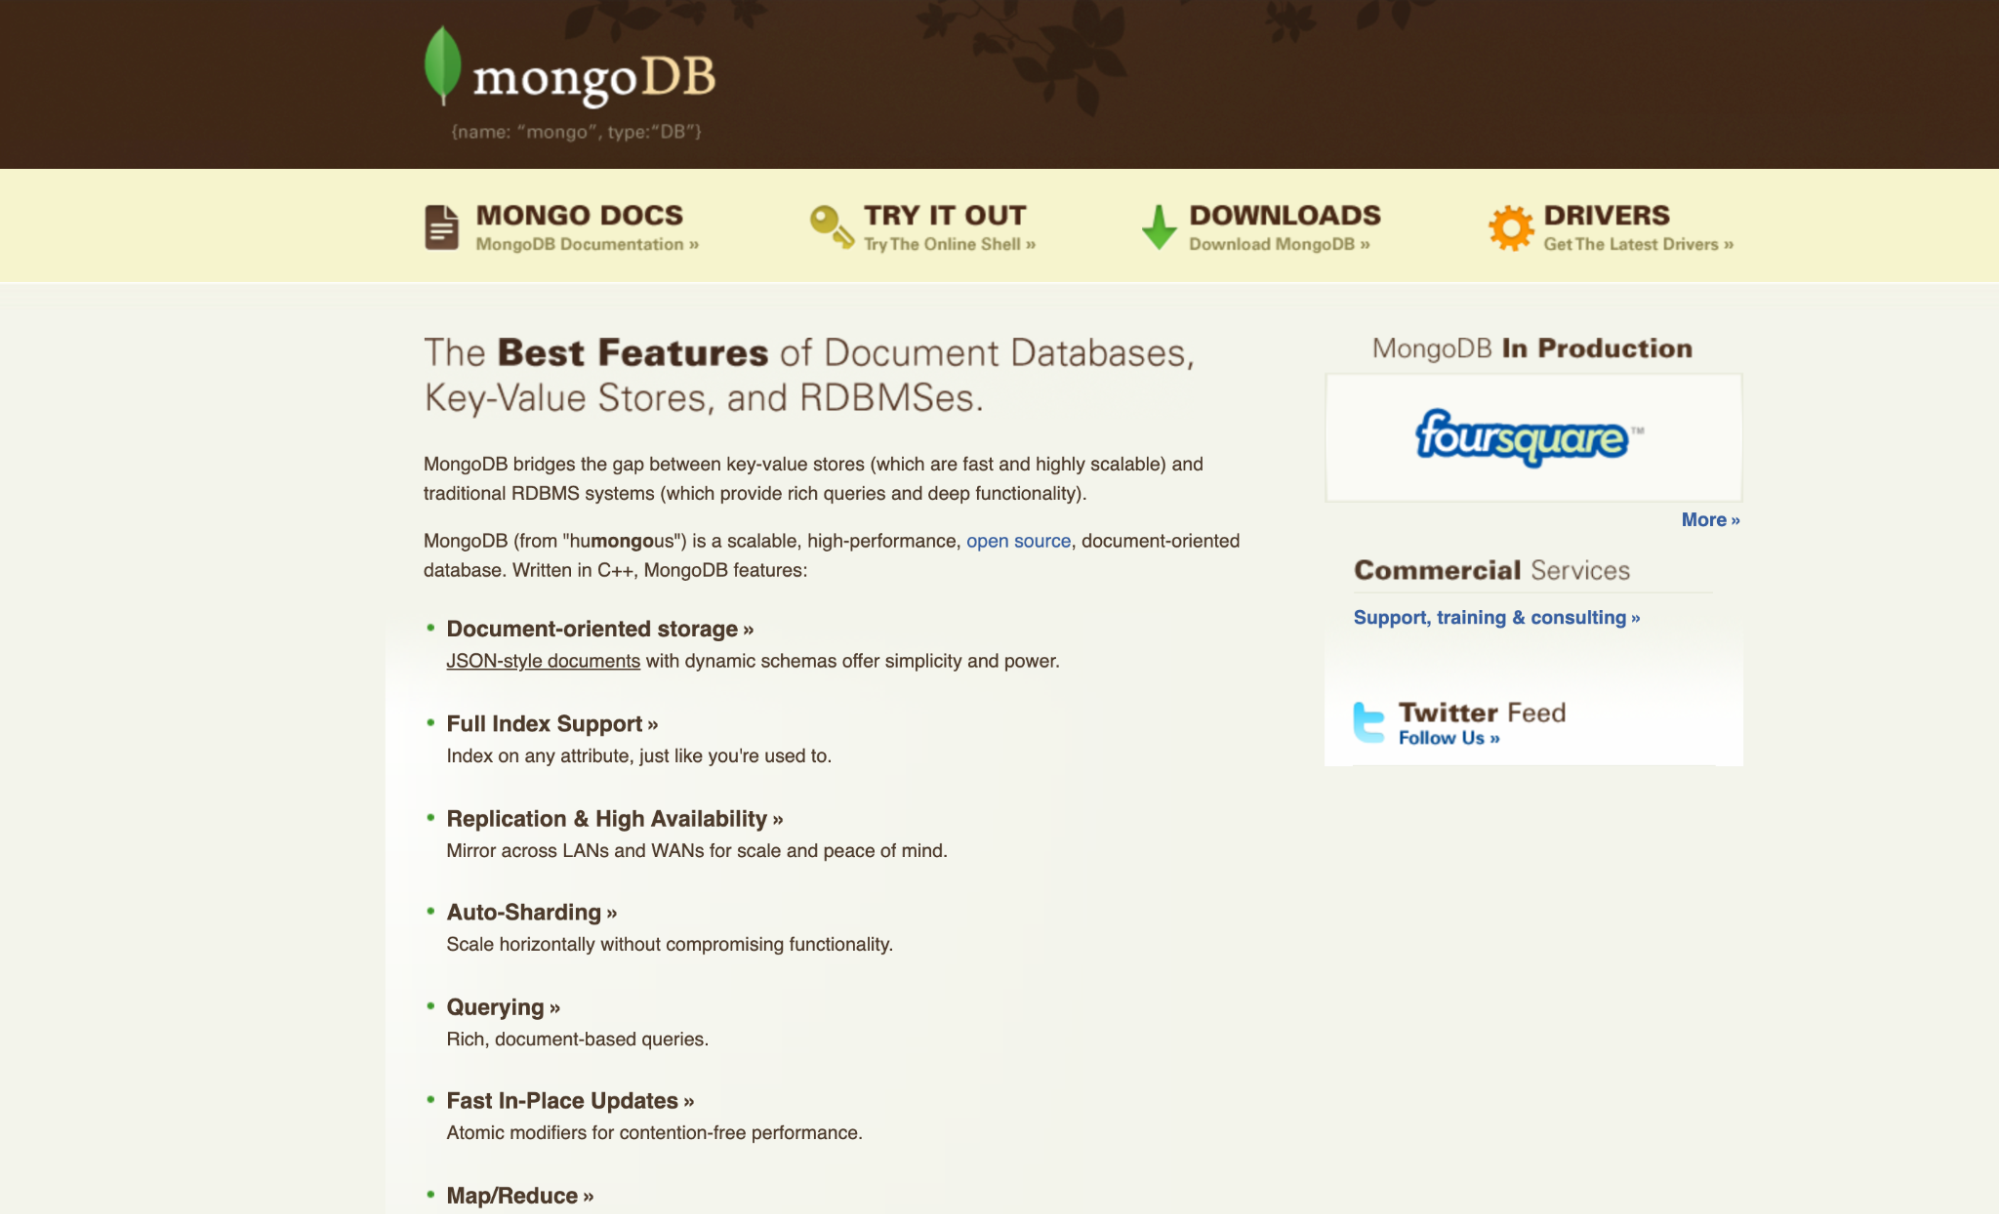 """Image of old MongoDB website, """"The Best Features of Document Databases, Key-Value Stores, and RDBMSes."""""""